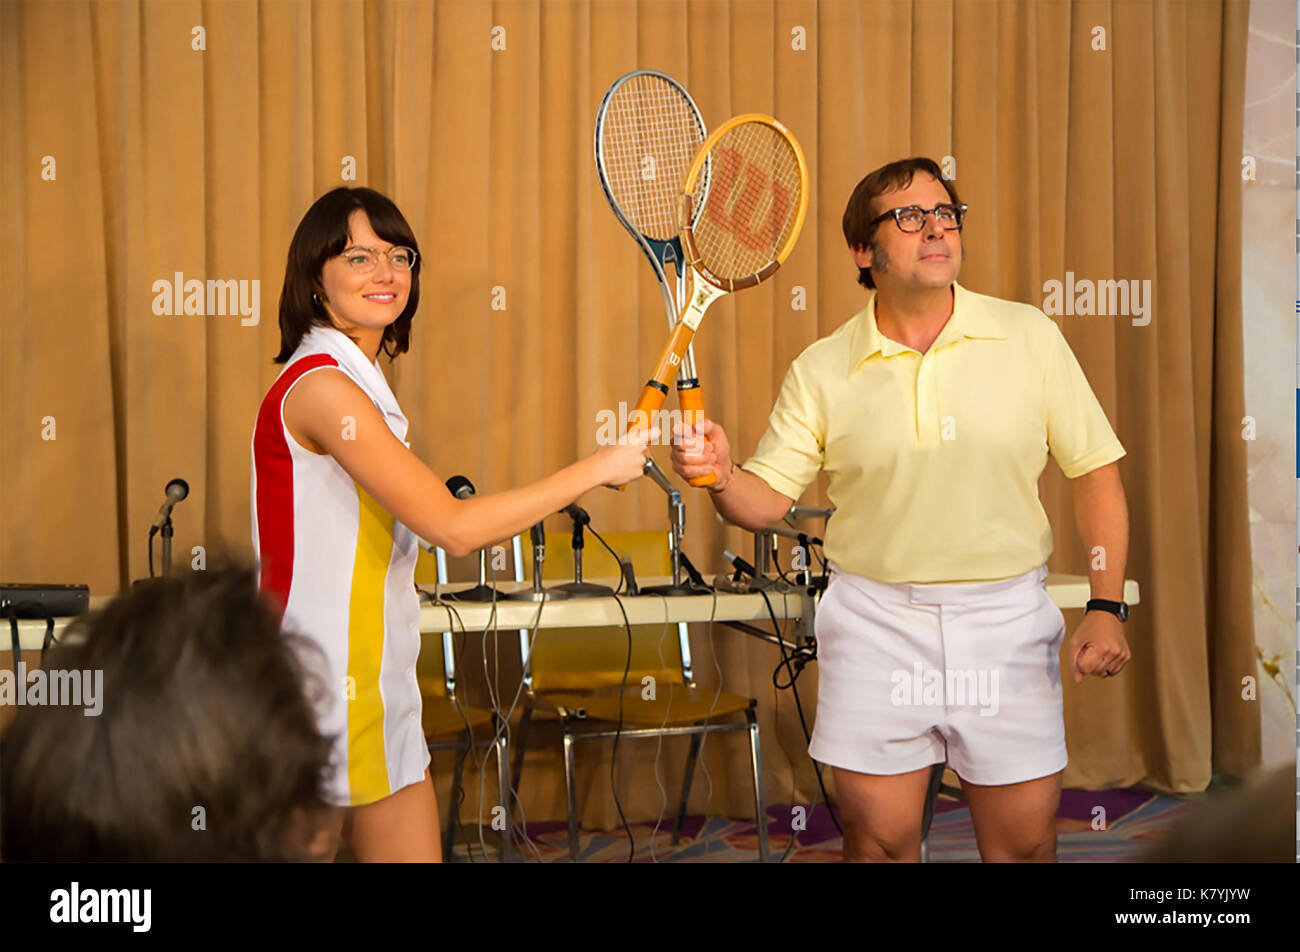 BATTLE OF THE SEXES 2017 Fox Searchlight film with Emma Stone and Steve Carell - Stock Image